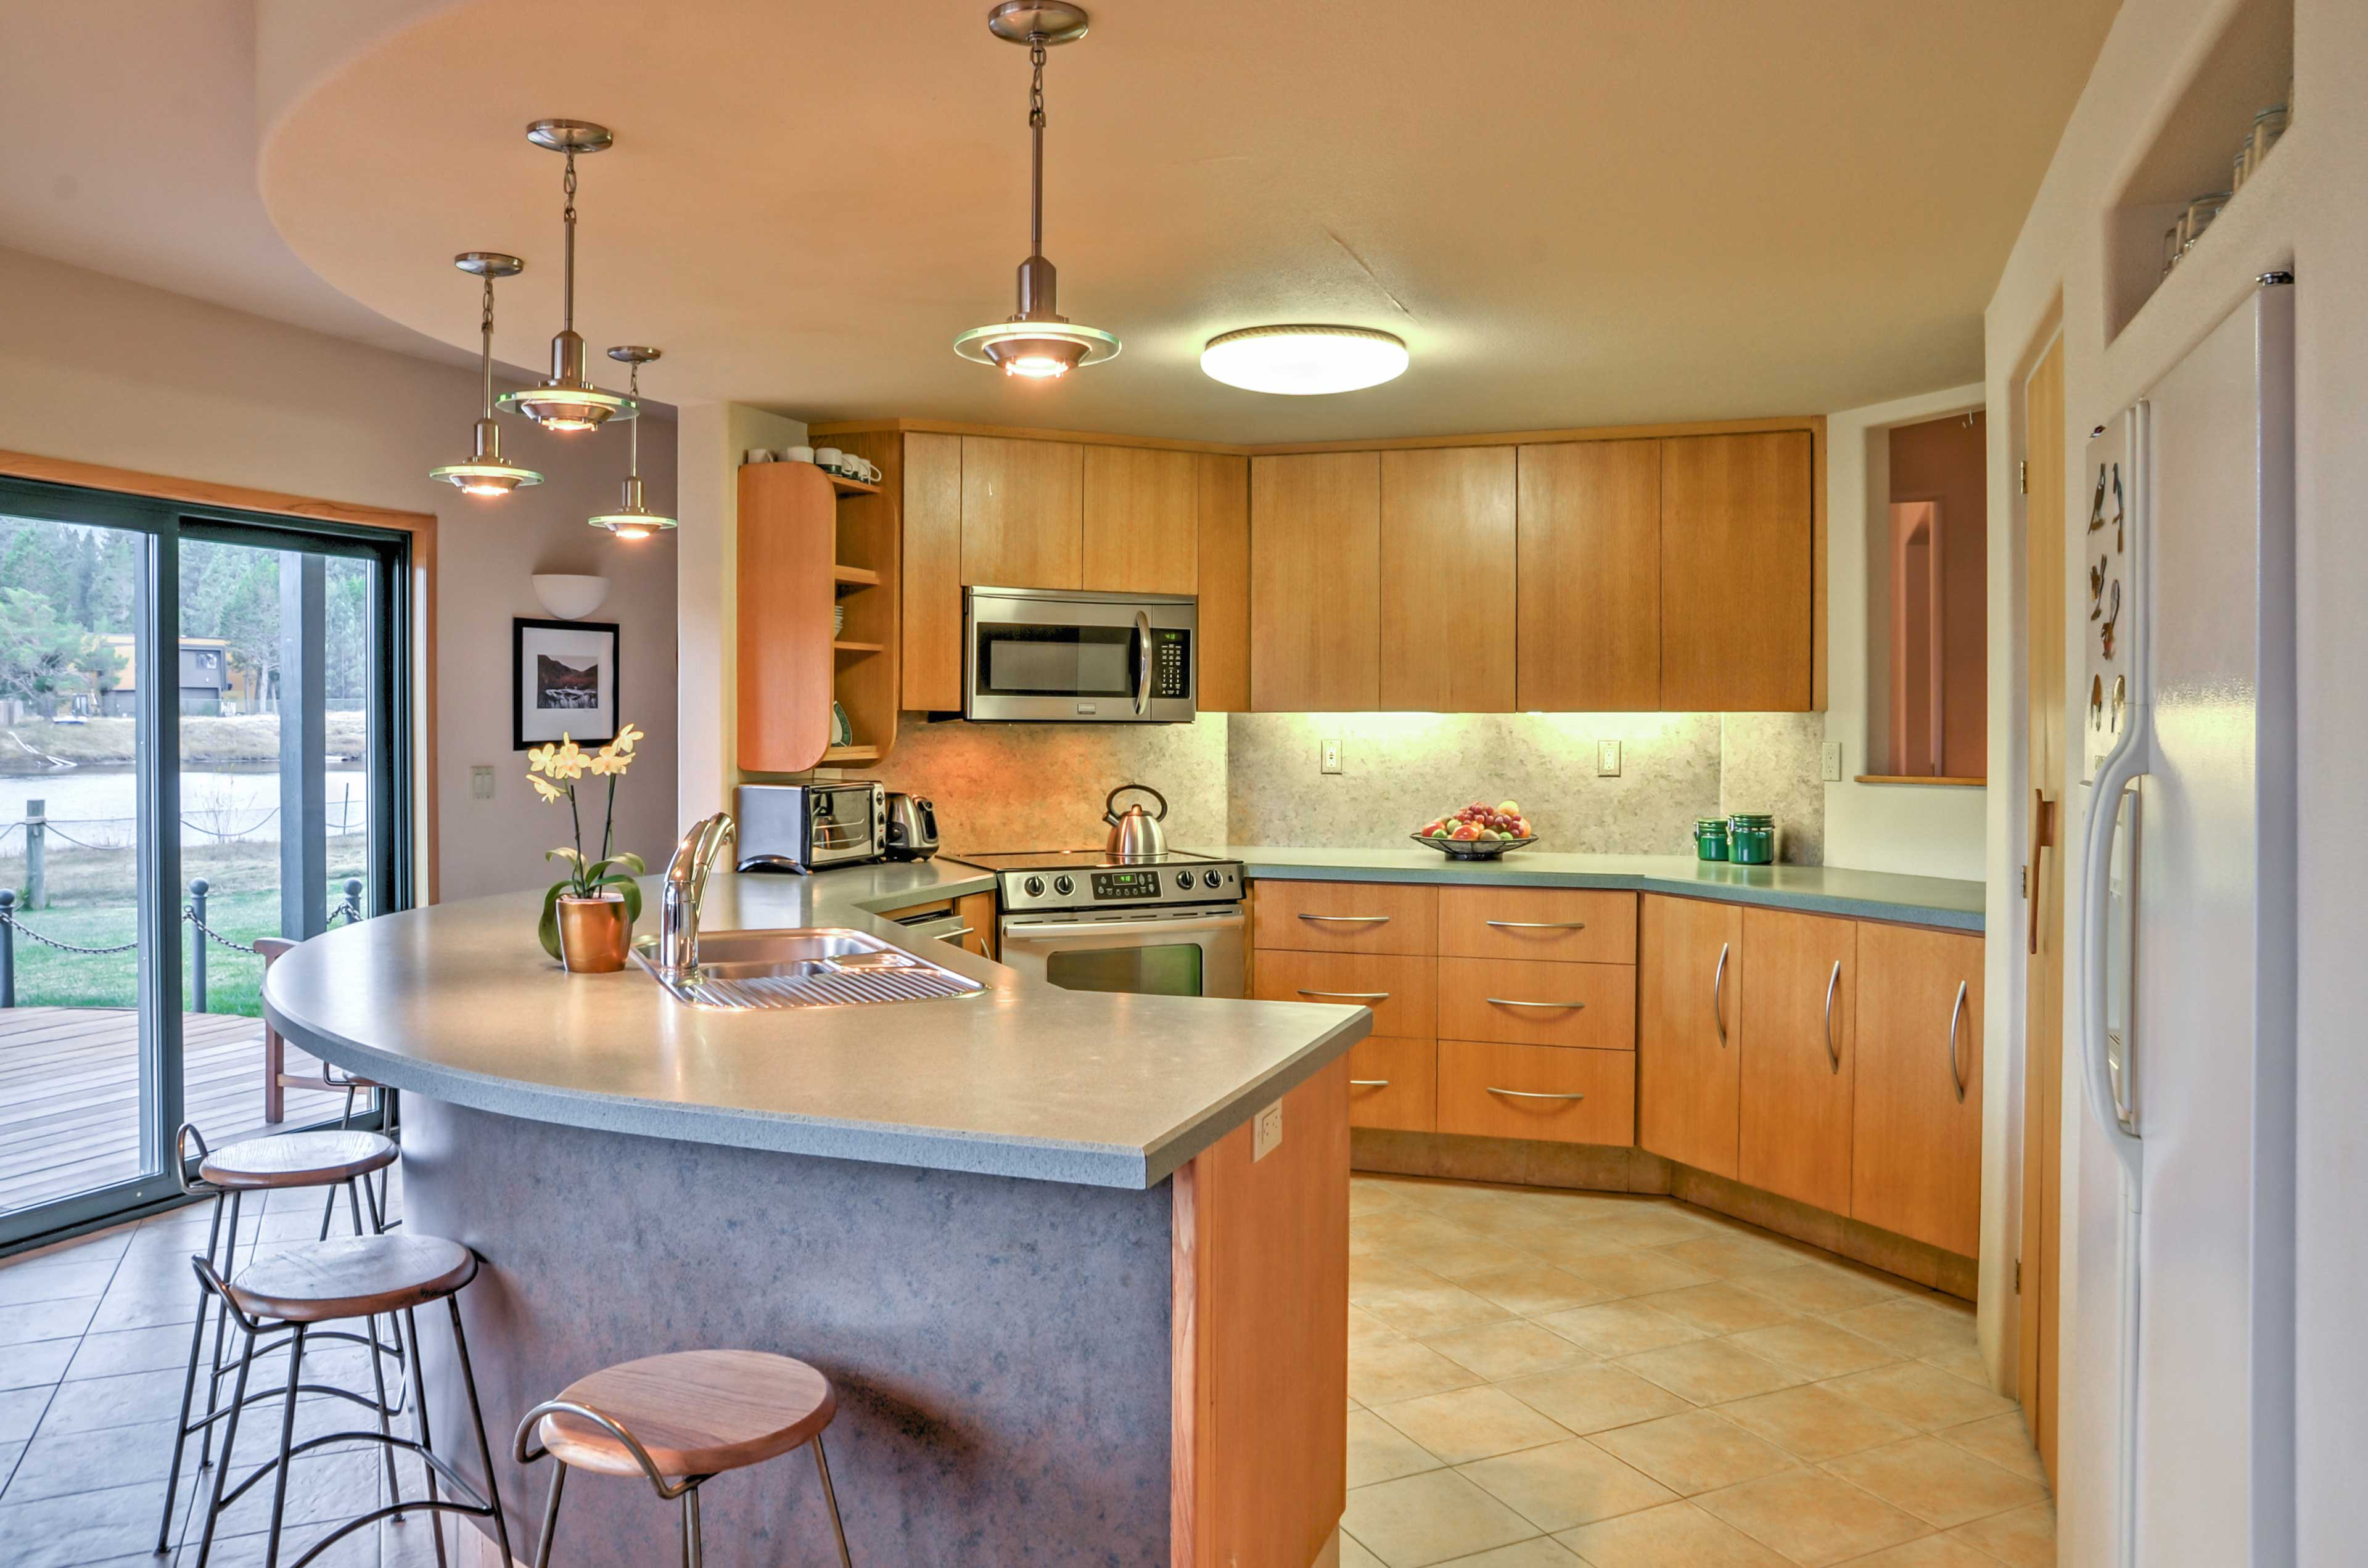 The kitchen is fully equipped with everything you'll need to create one-of-a-kind meals.